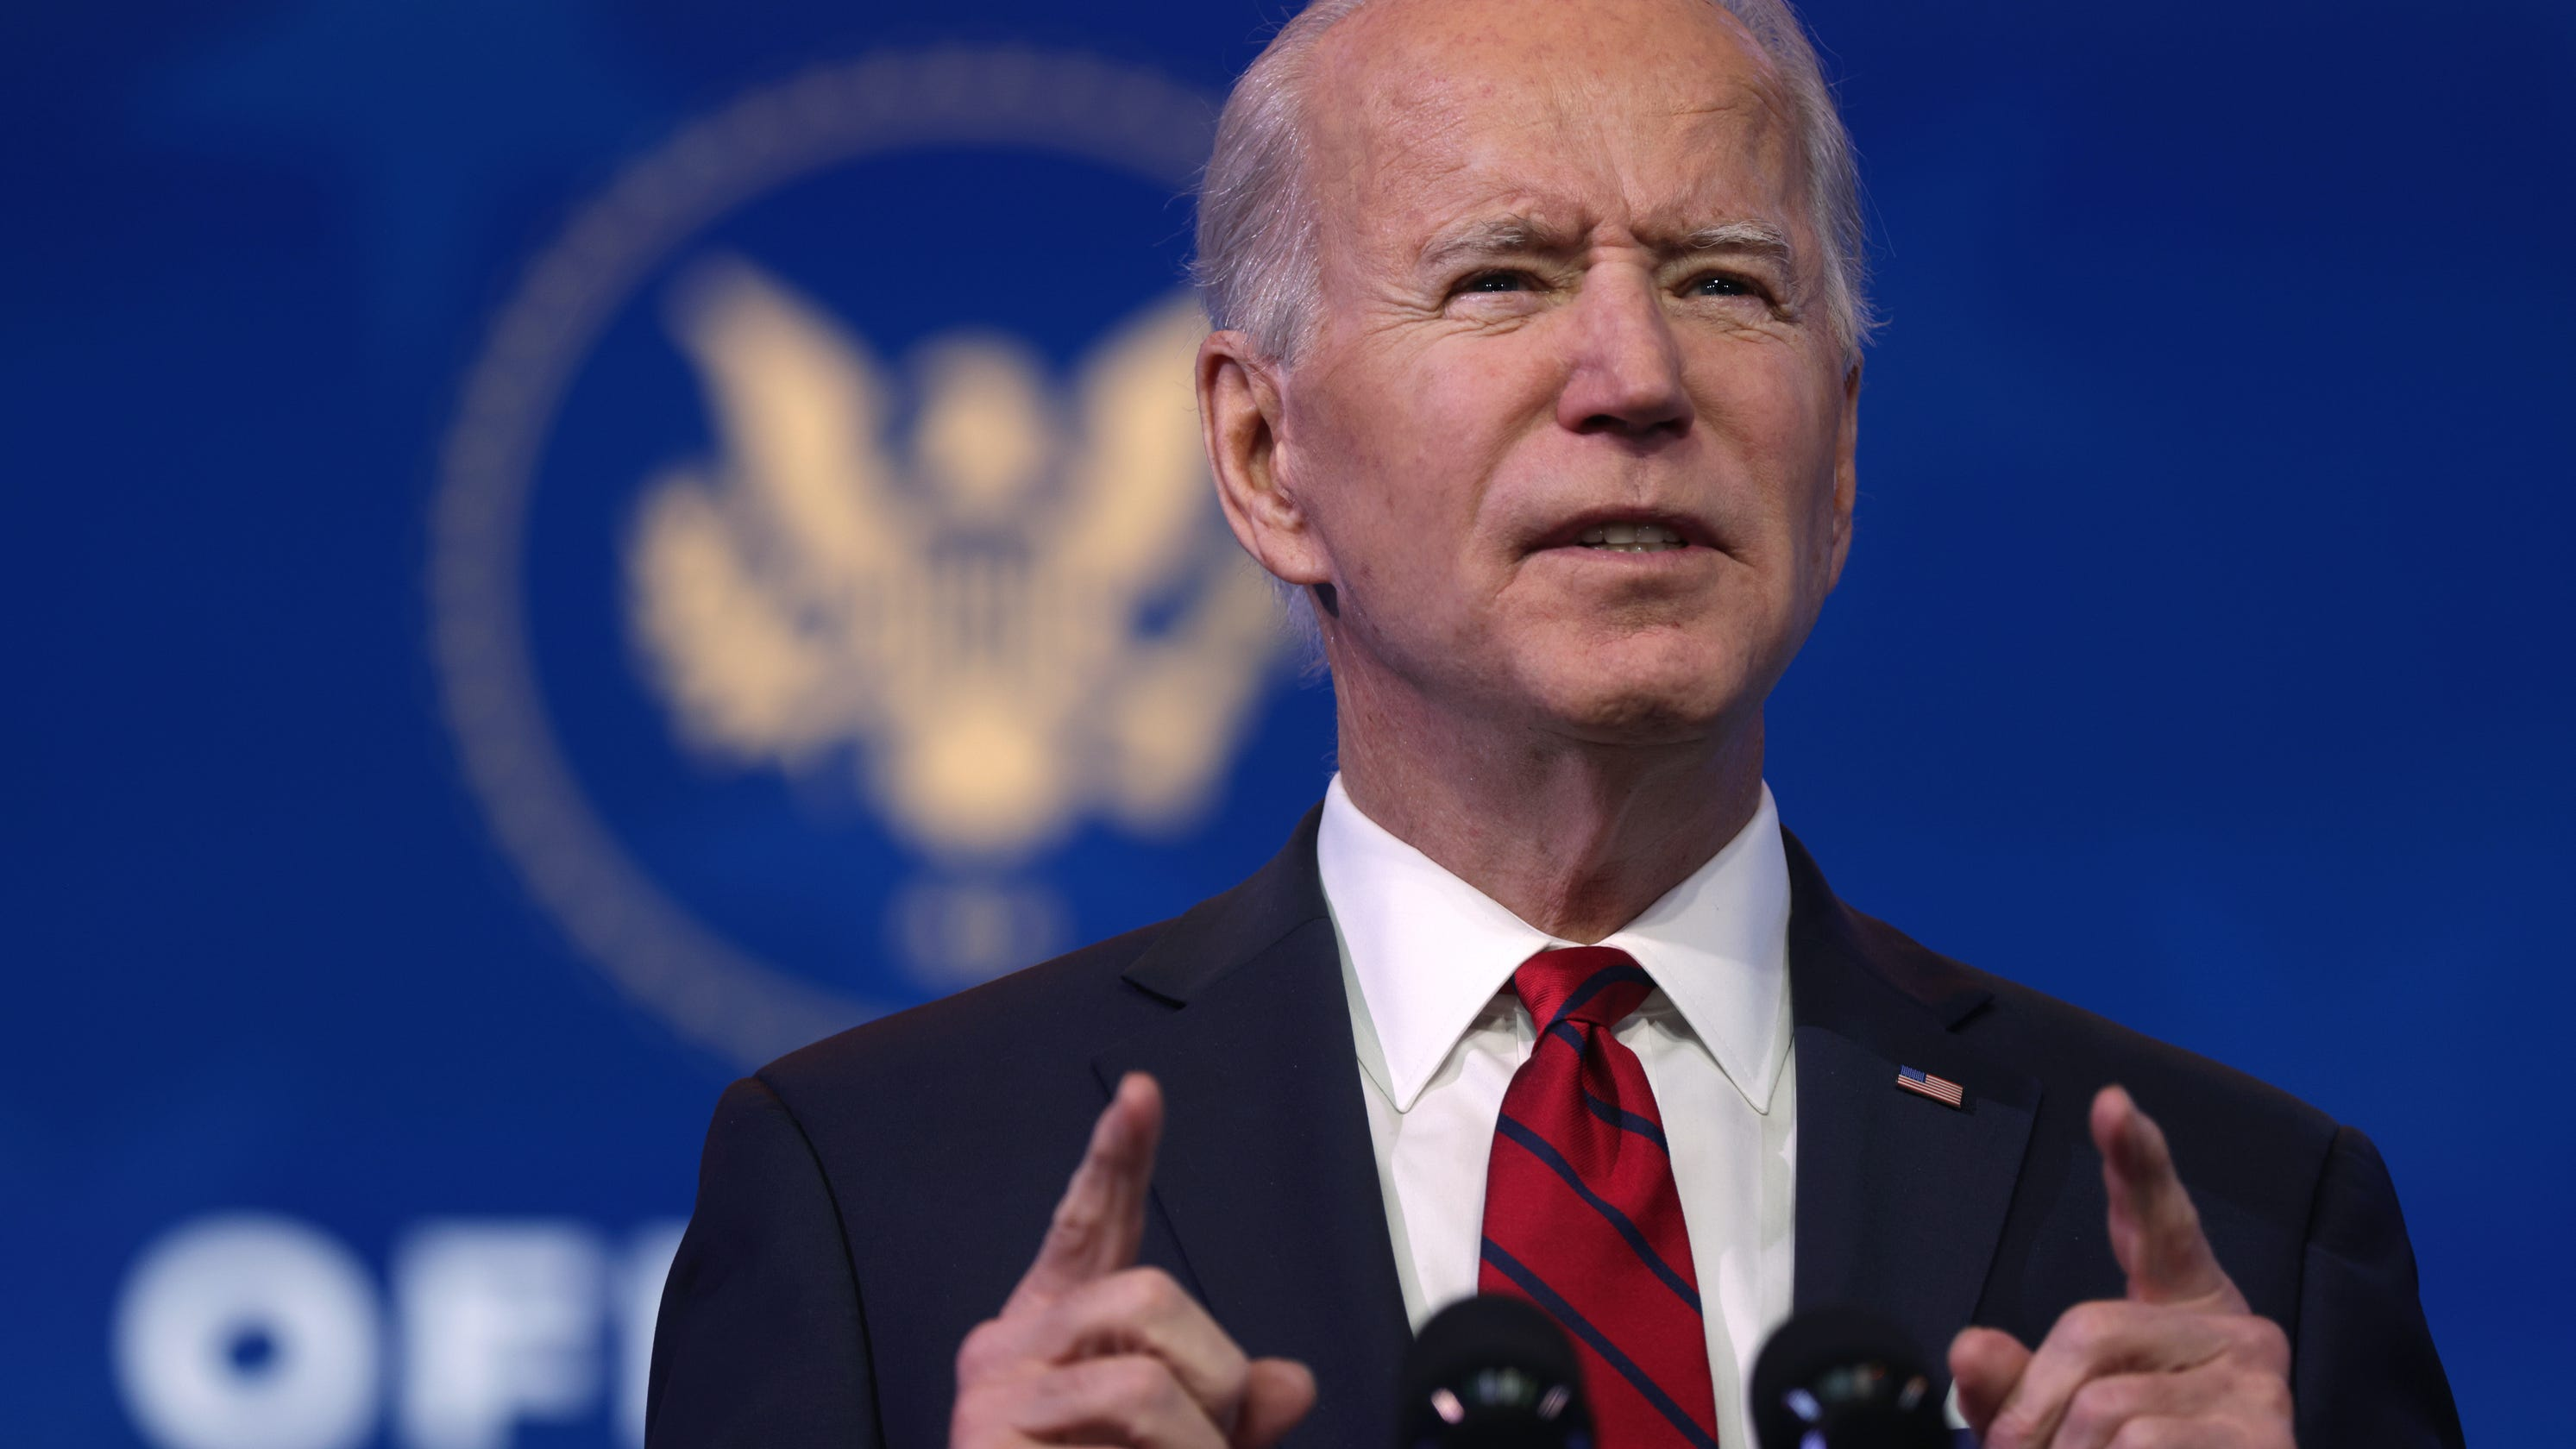 A Biden presidency could bring a wave of policy shifts. Here are the ones you likely care about.